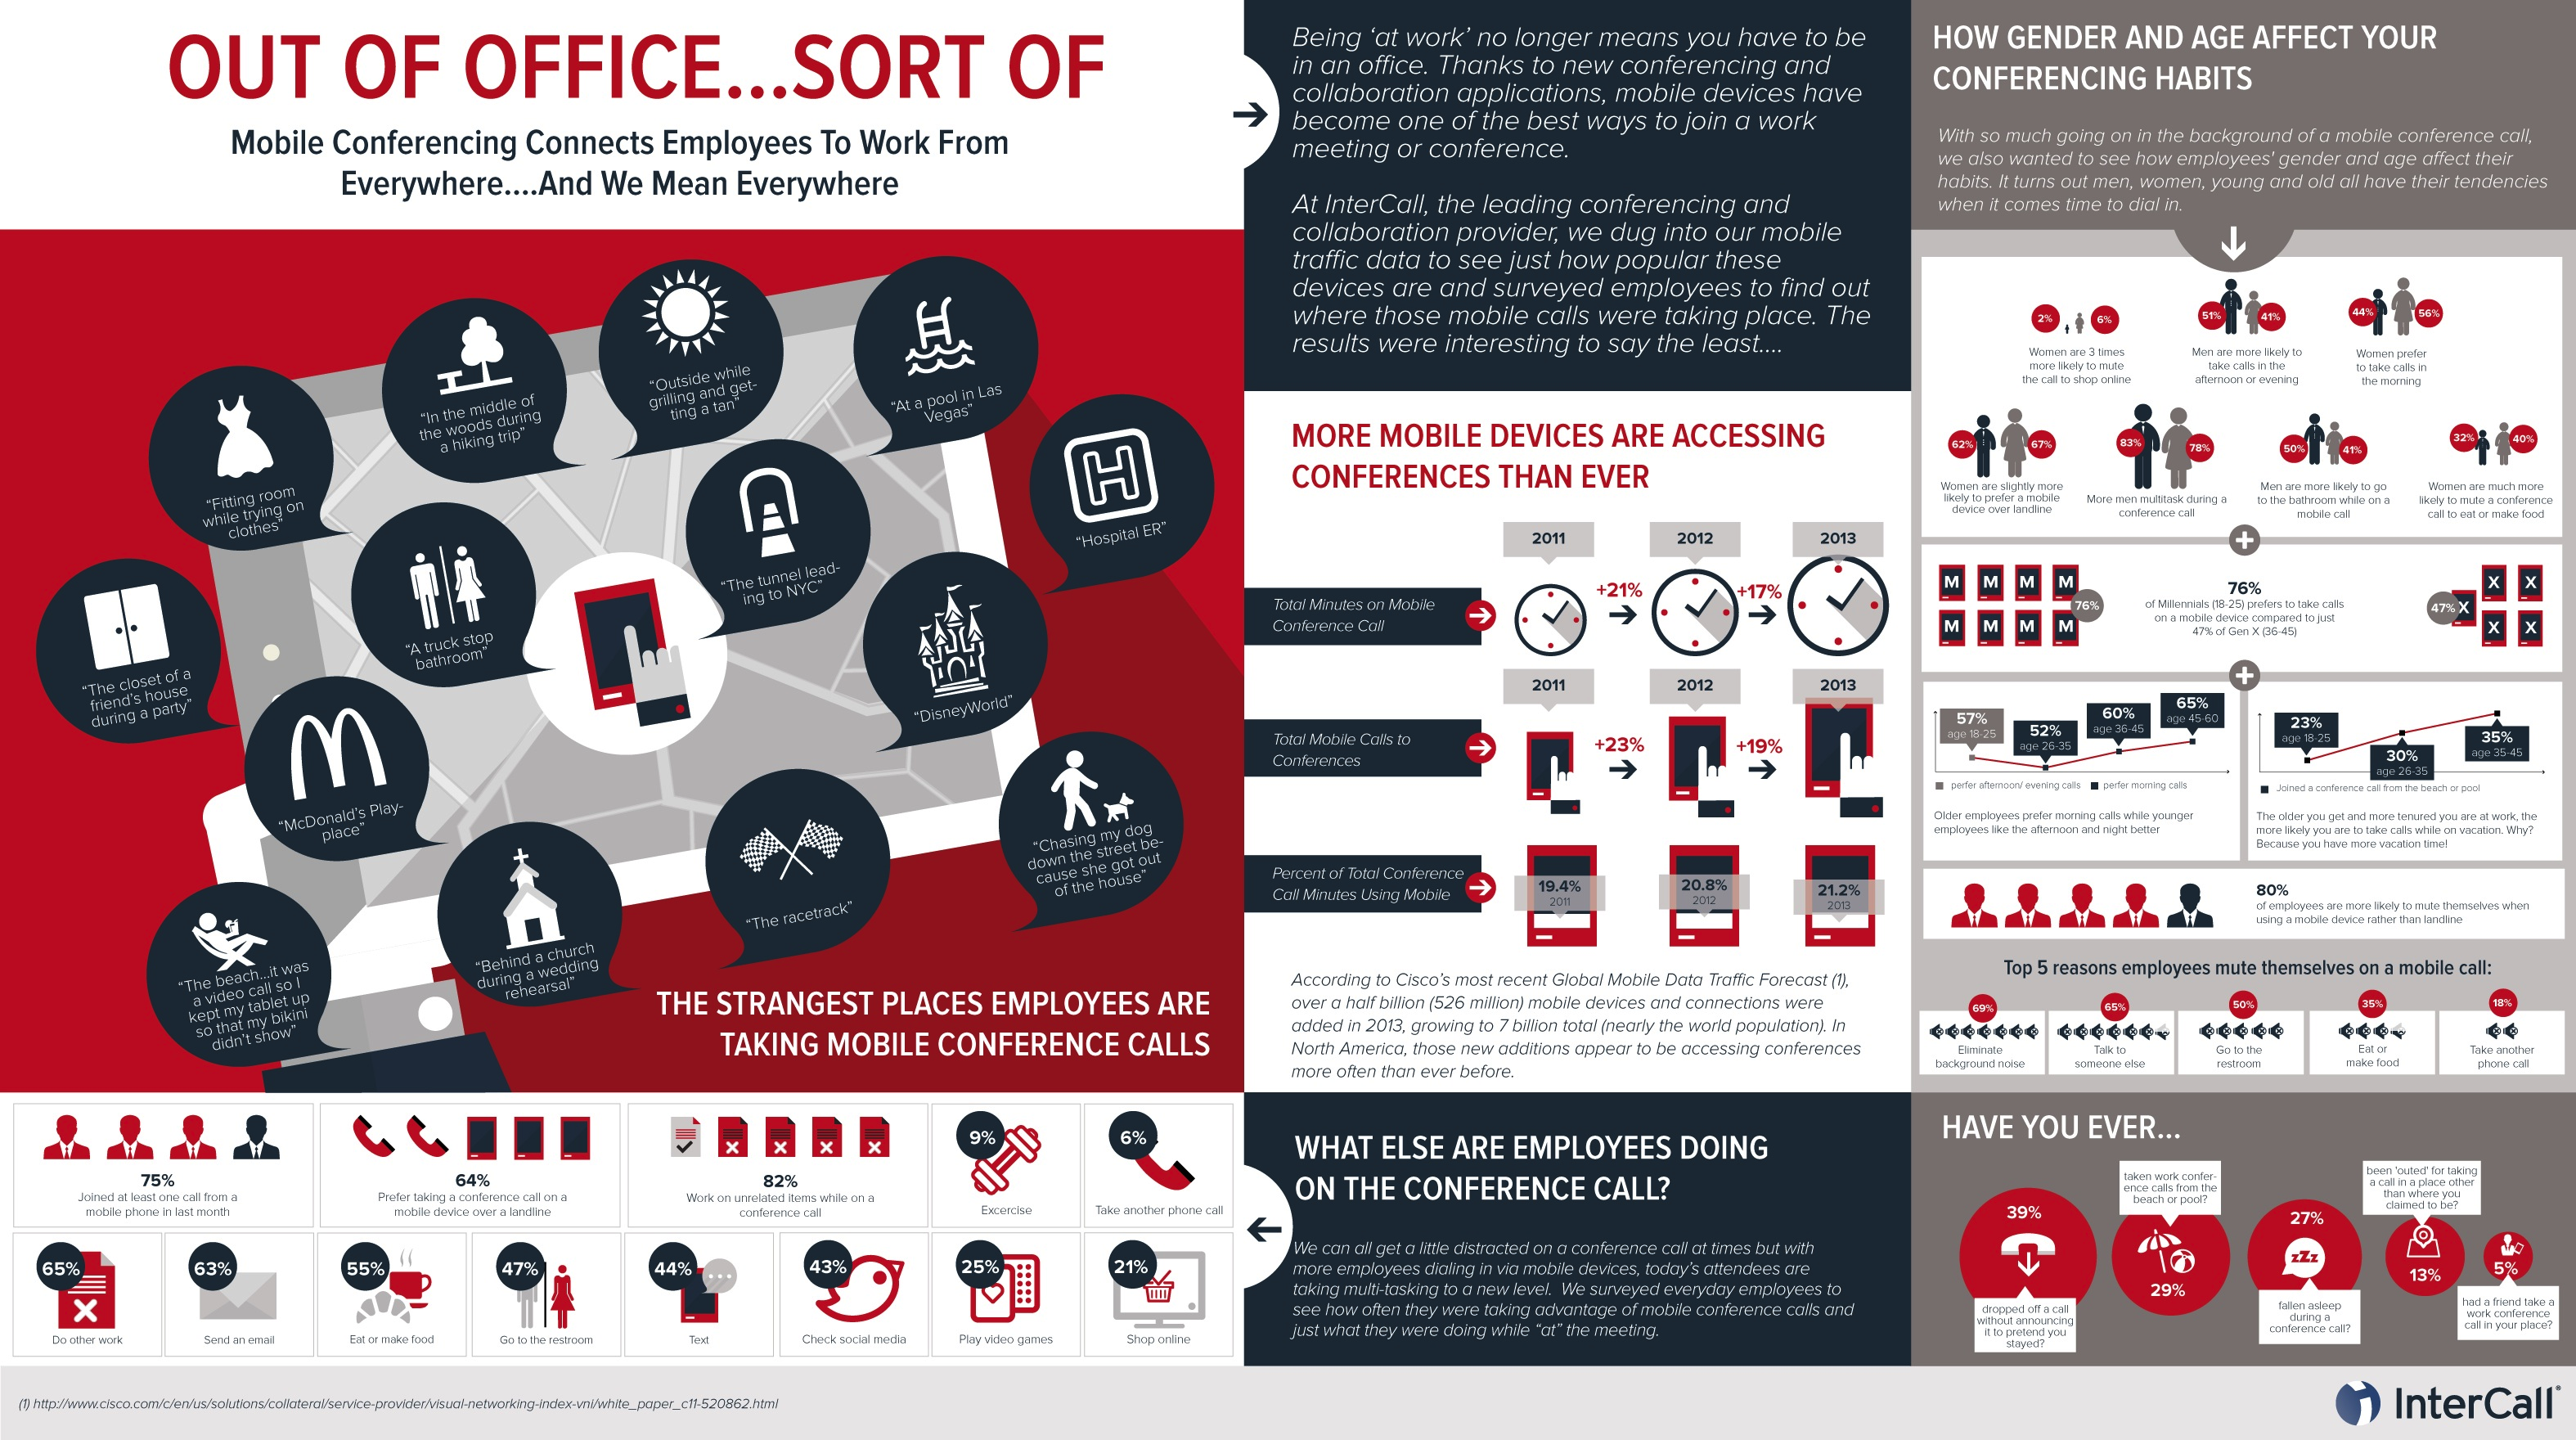 InterCall-Mobile-Conferencing-and-Behaviors-Infographic.png